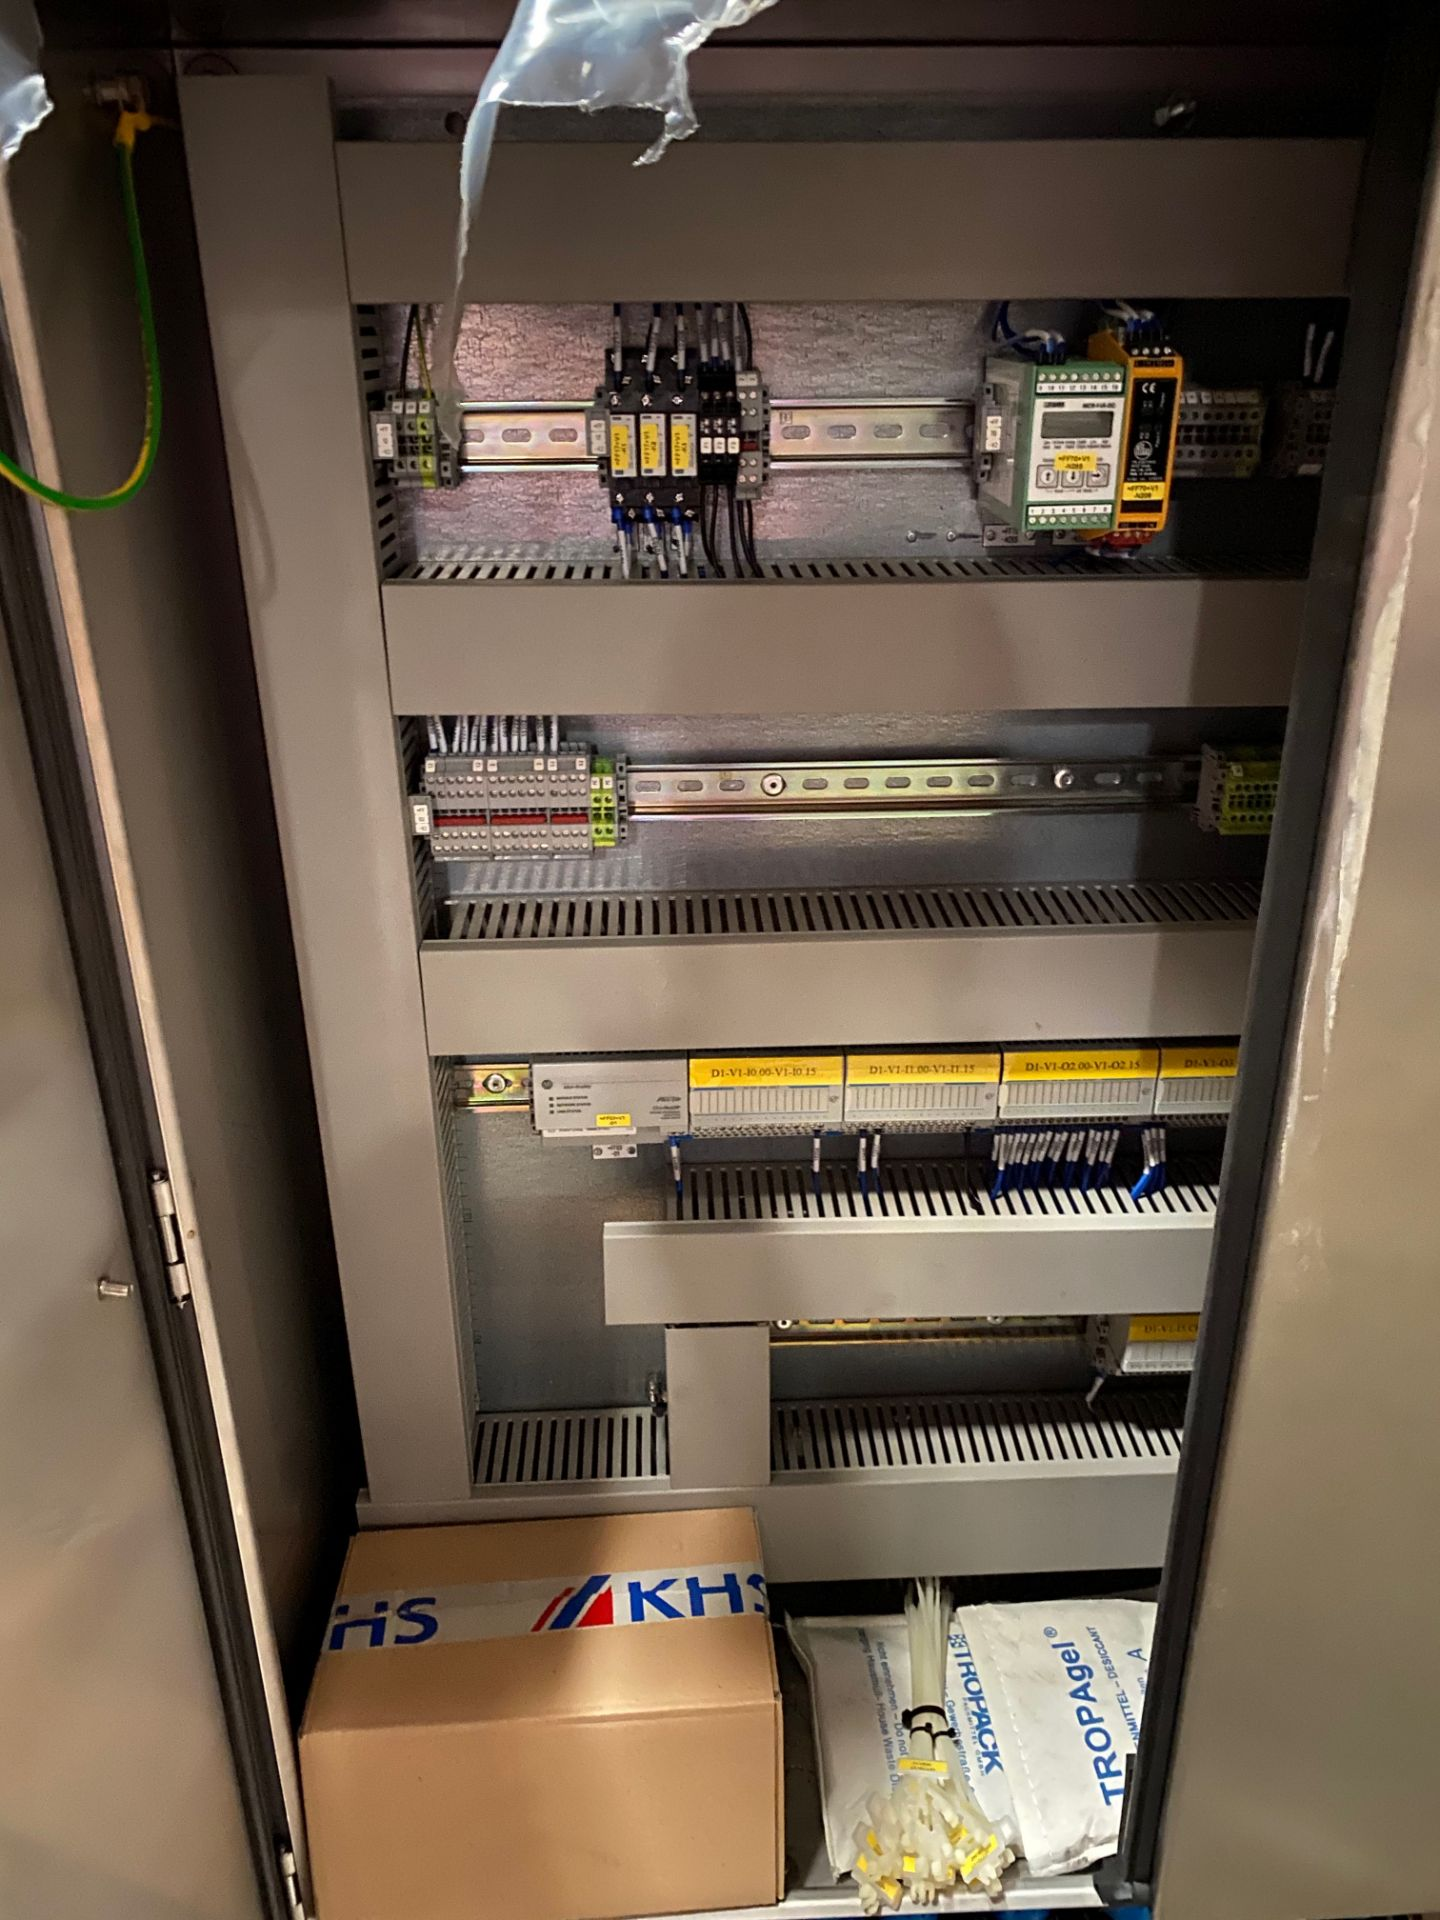 KHS INNOCLEAN Manifold Control Panel, New Never Installed - Image 3 of 5